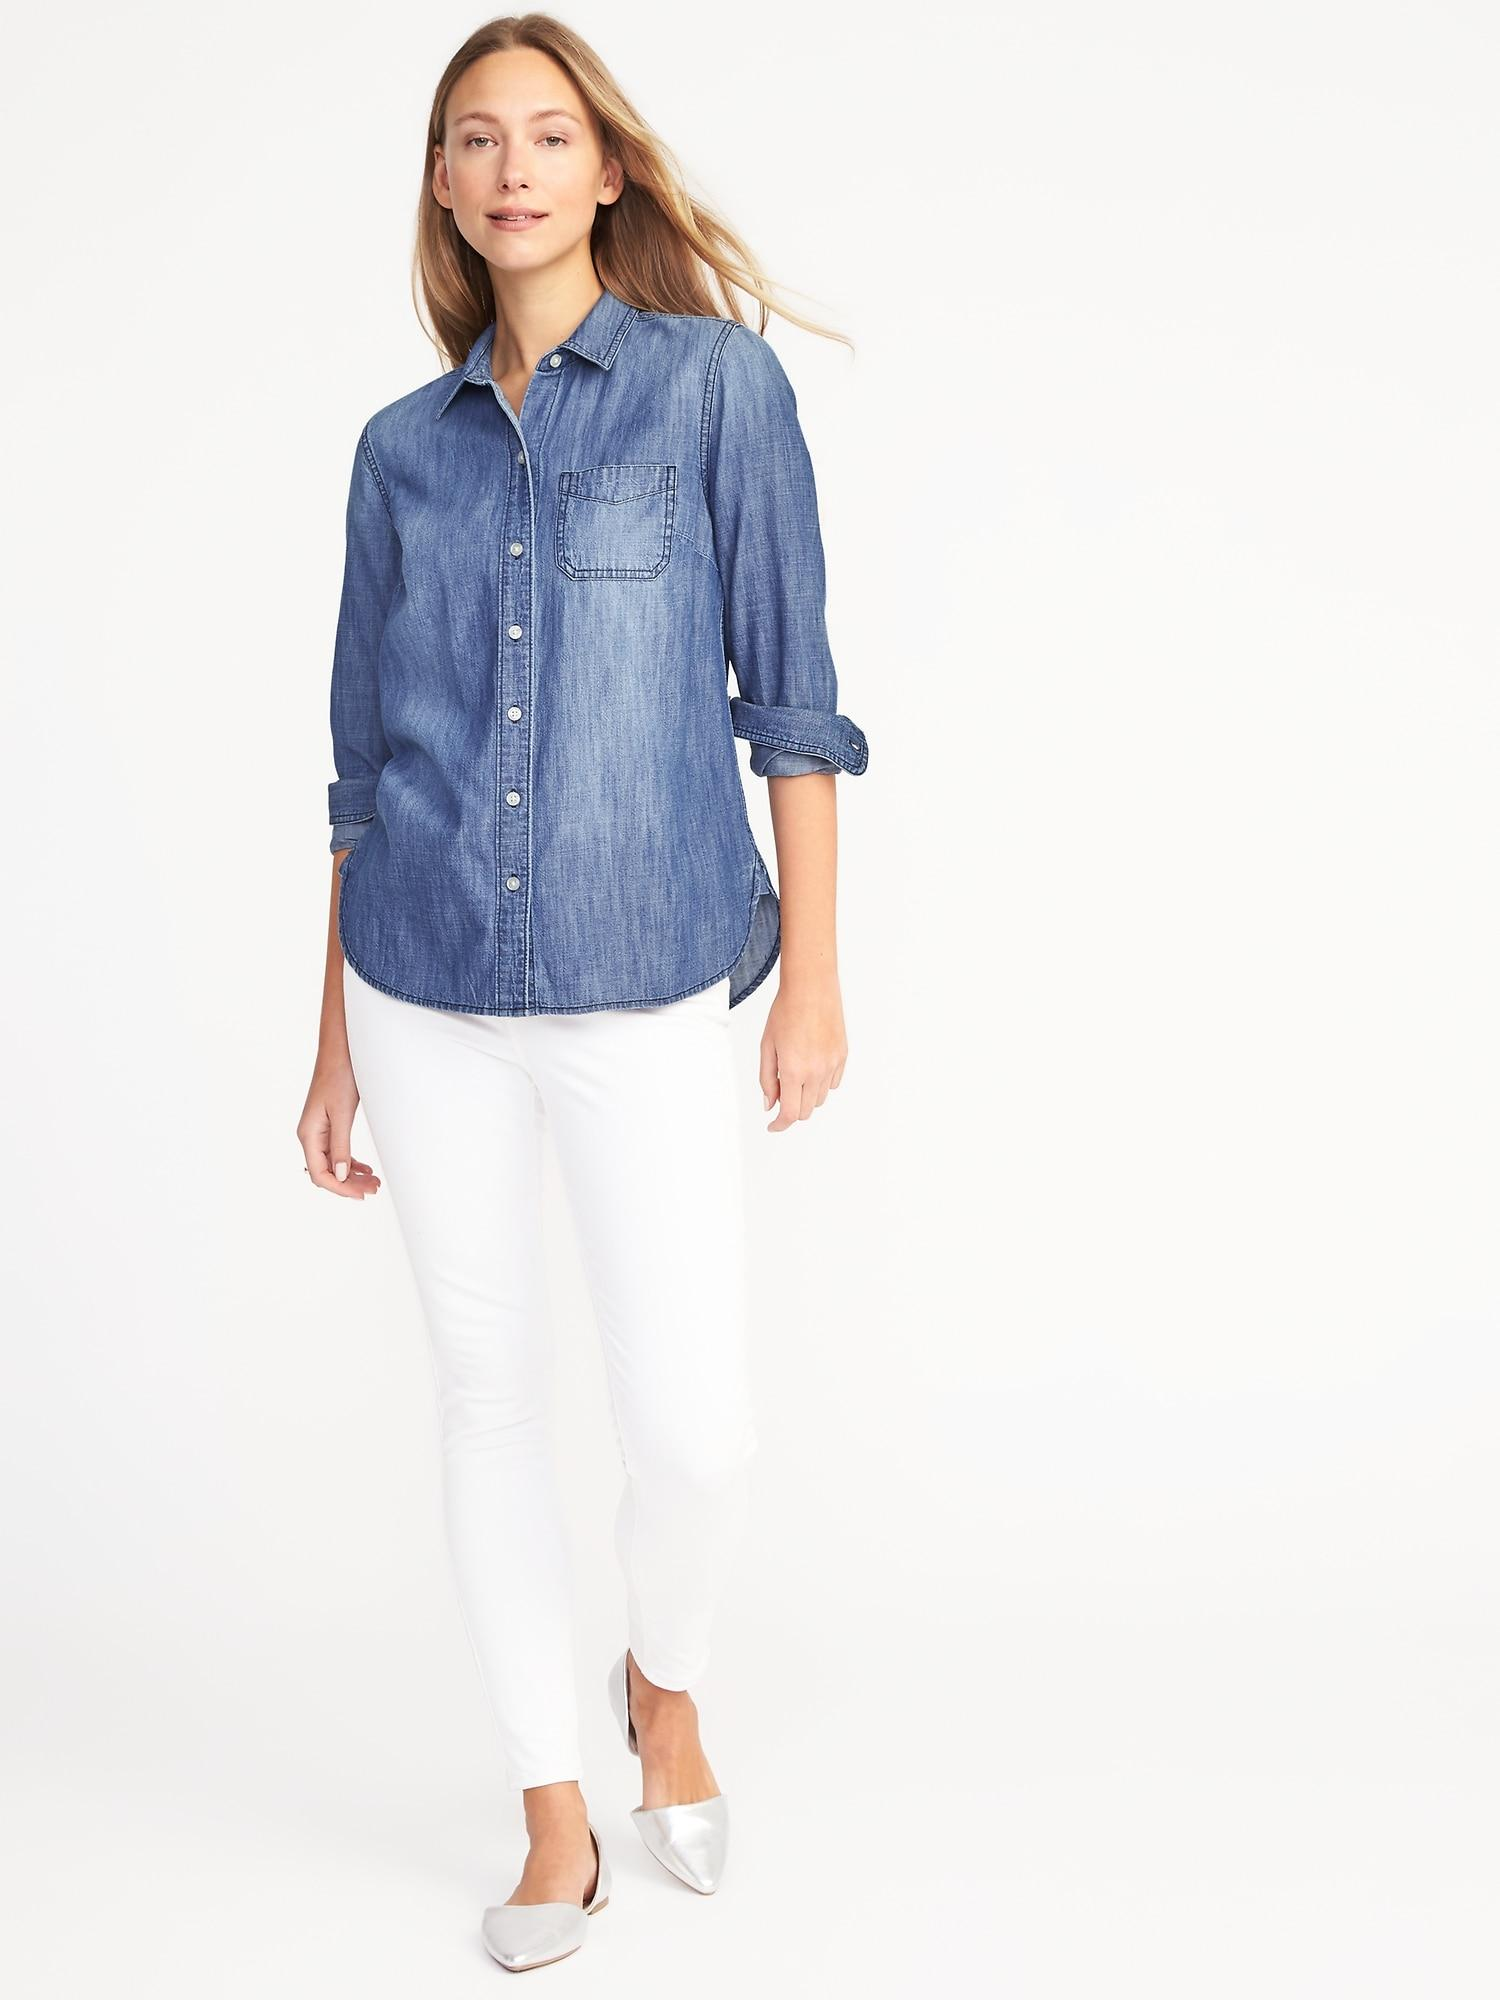 ba6e7fd86891 Old Navy Classic Chambray Shirt in Blue - Lyst